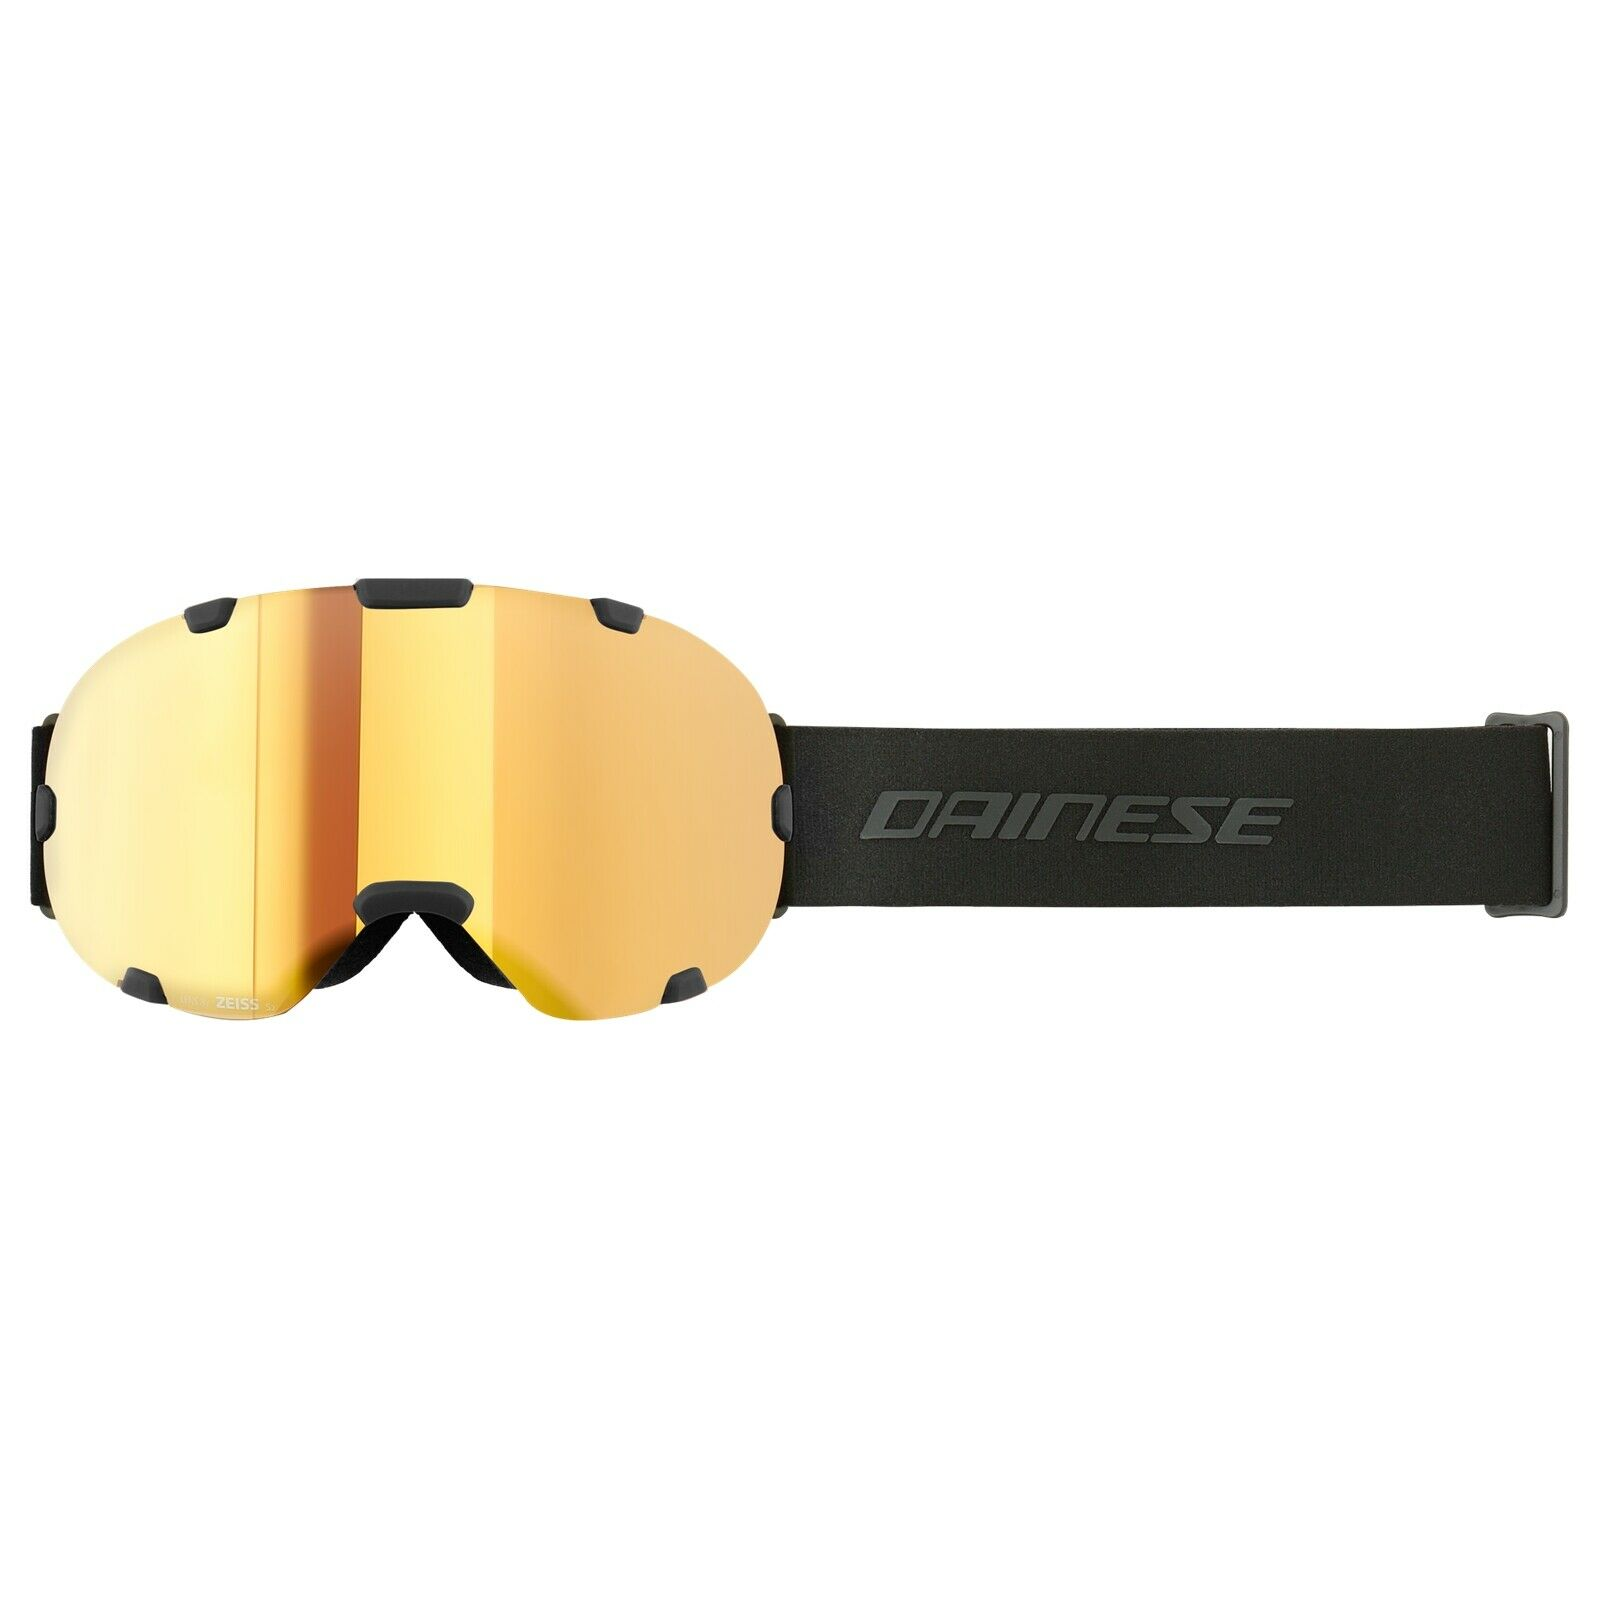 Skibrille Dainese HP Surface stretch limo Skimaske Wintersport Brille